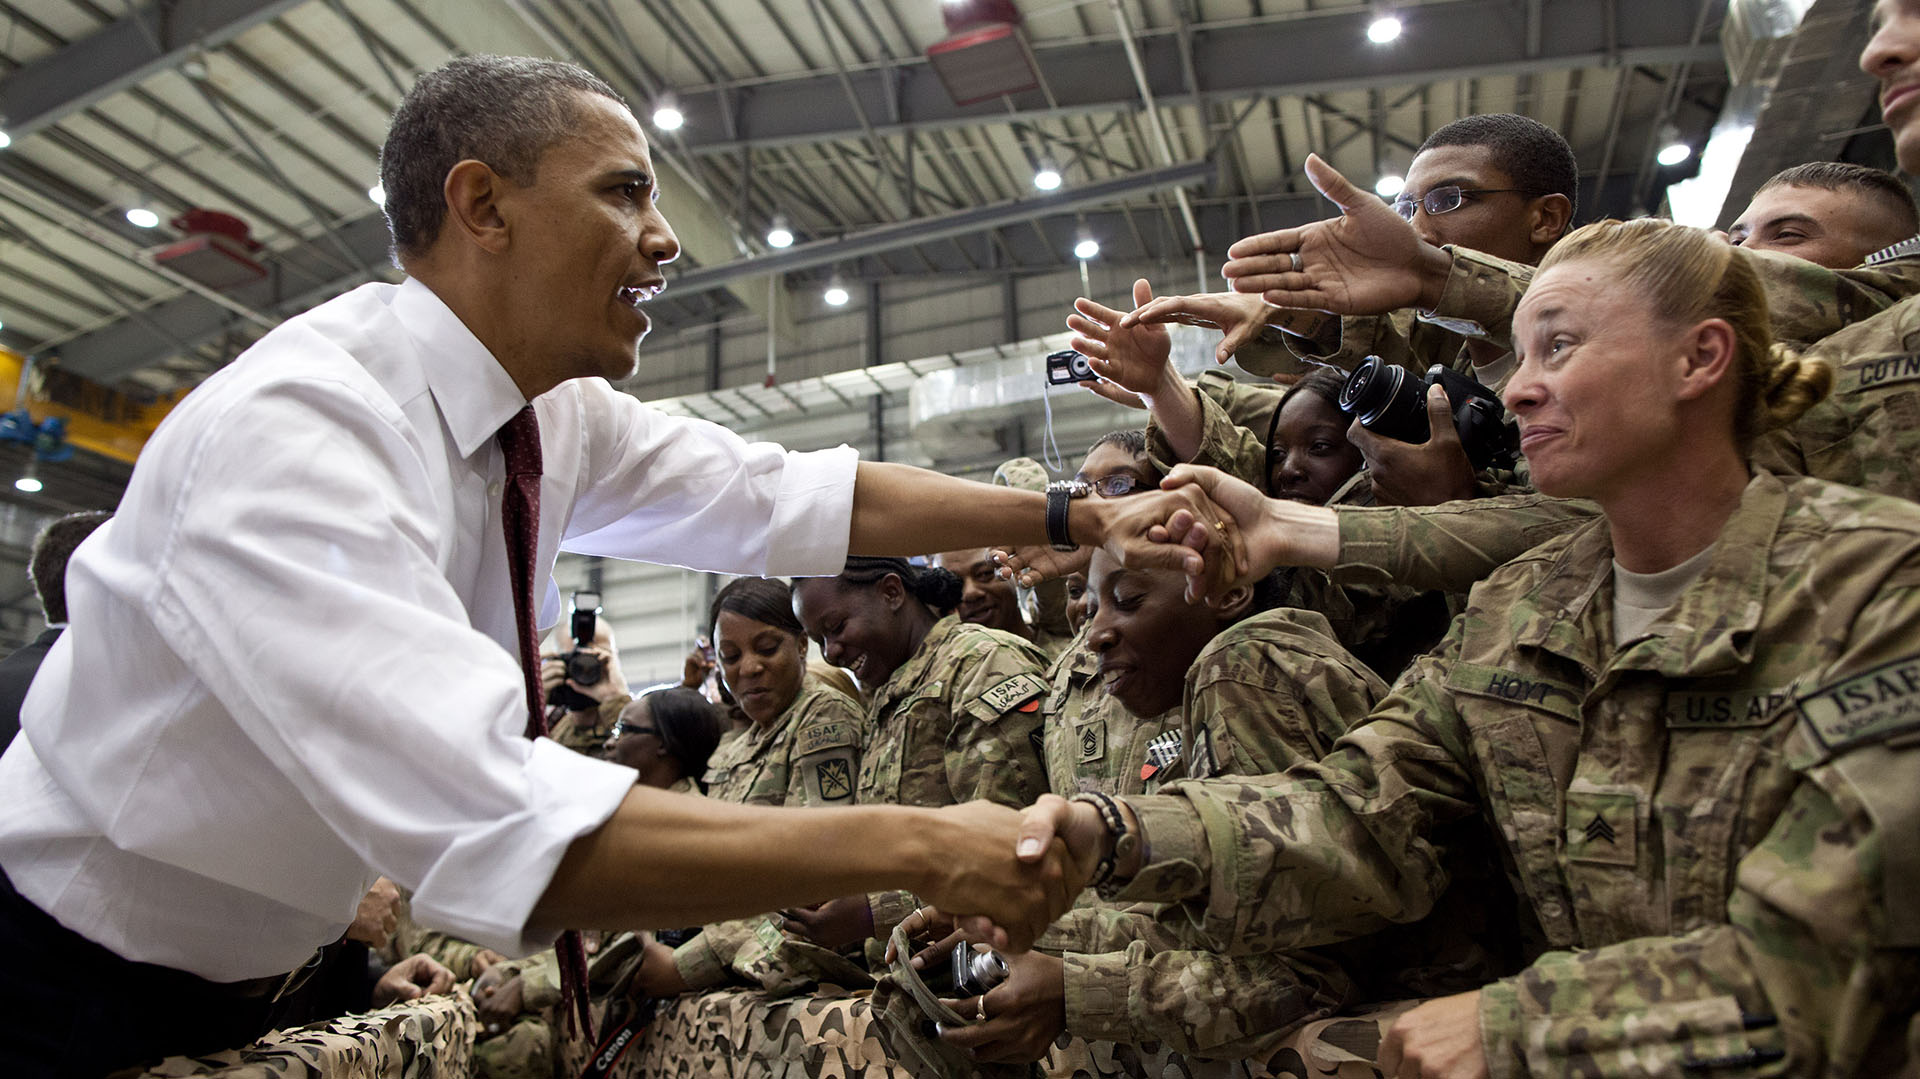 Obama saluda a las tropas estadounidenses en la base Bagram de Afganistán tras una visita sopresiva el 1° de May de 2012. (Official White House Photo by Pete Souza)